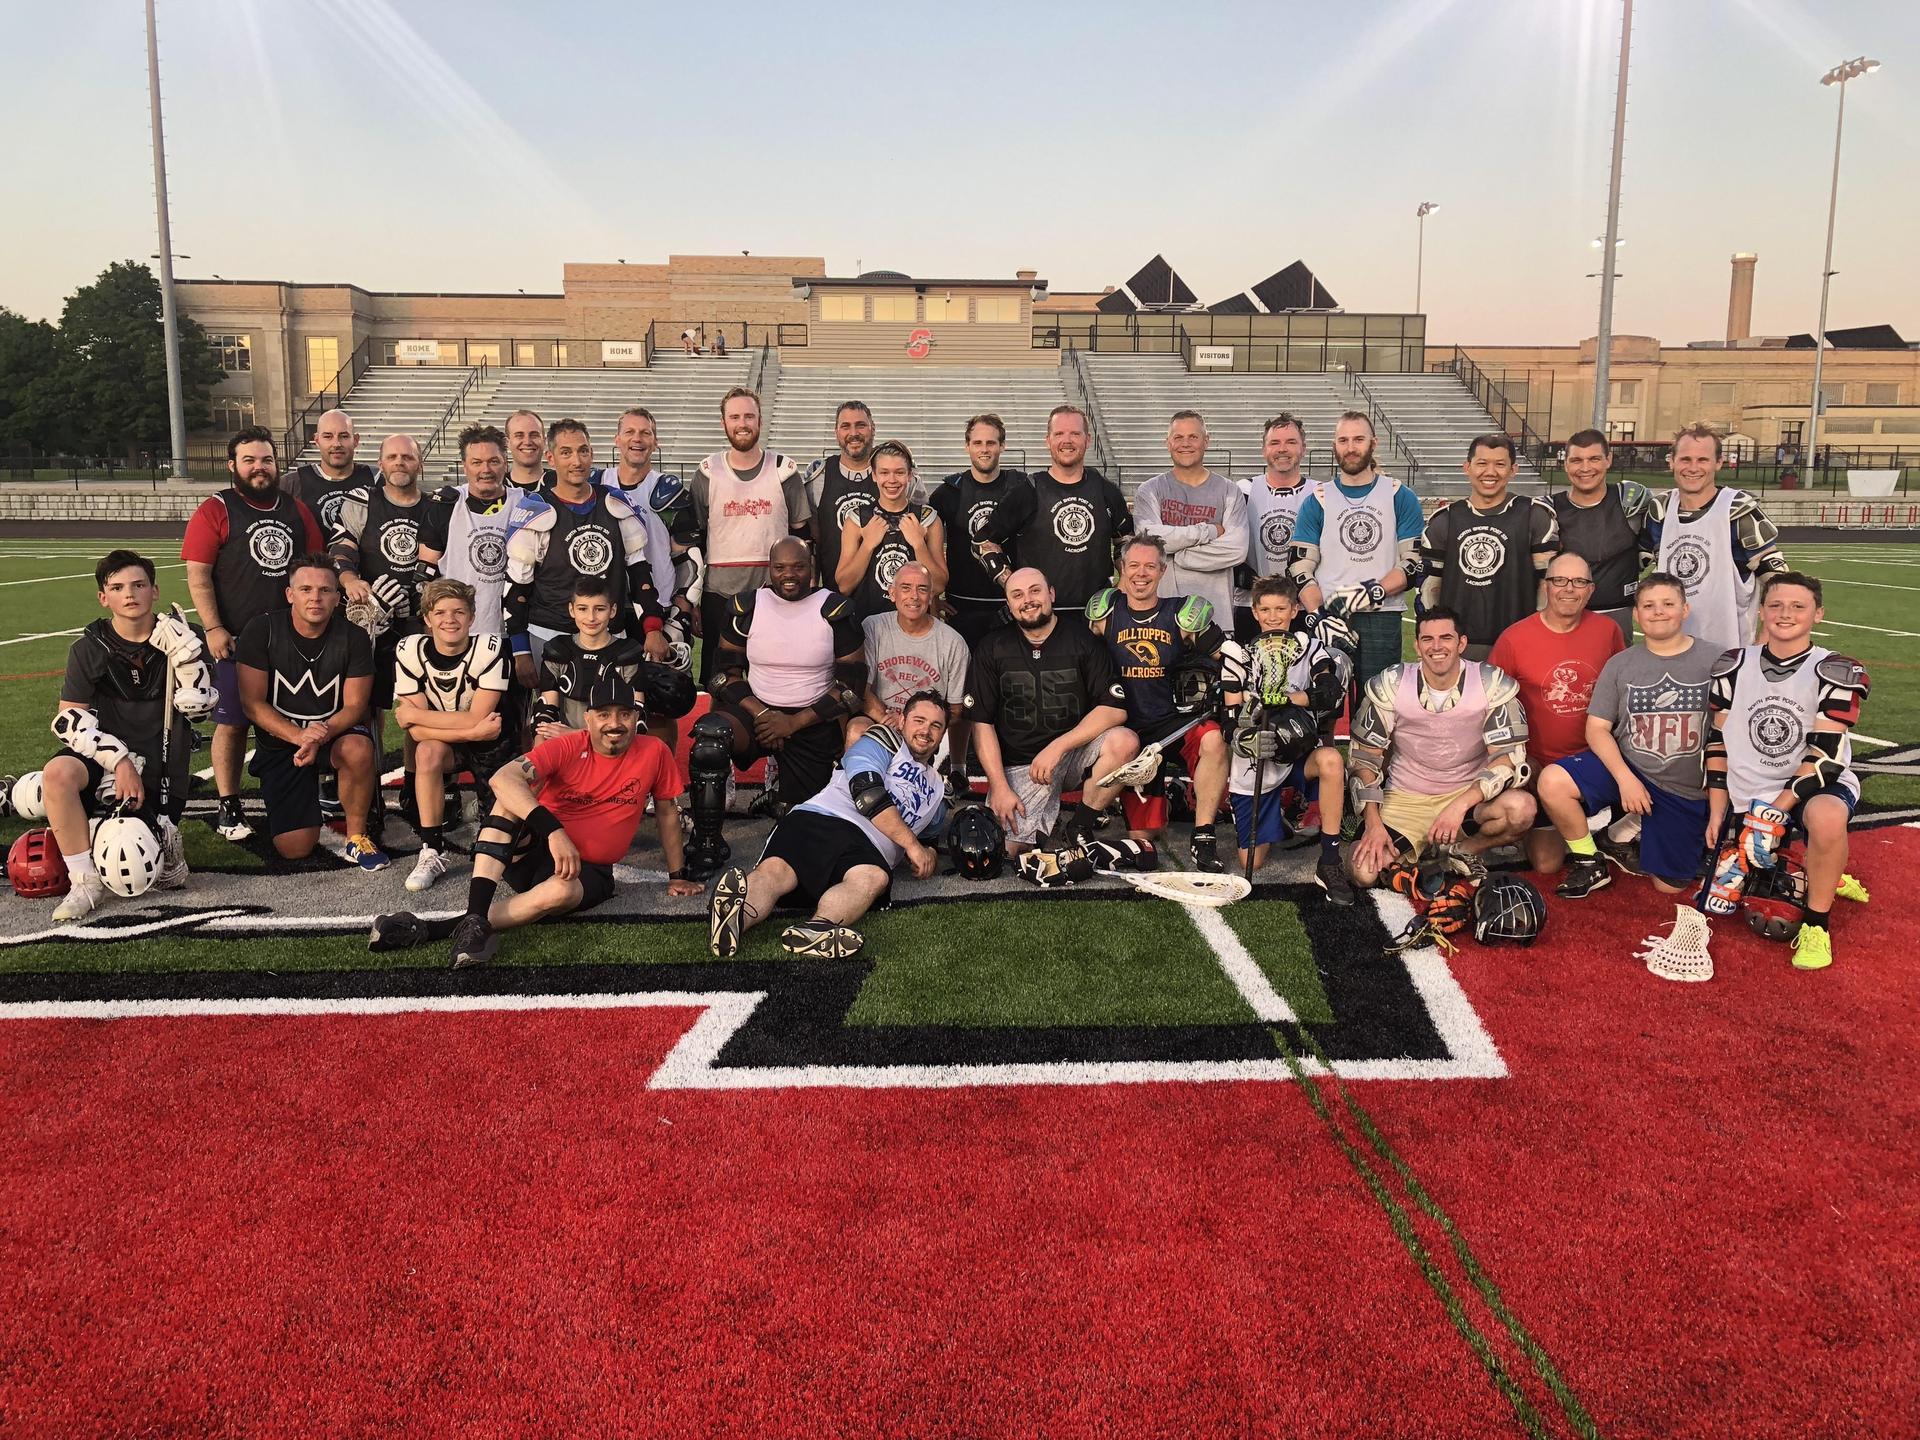 Old Man Lacrosse group picture